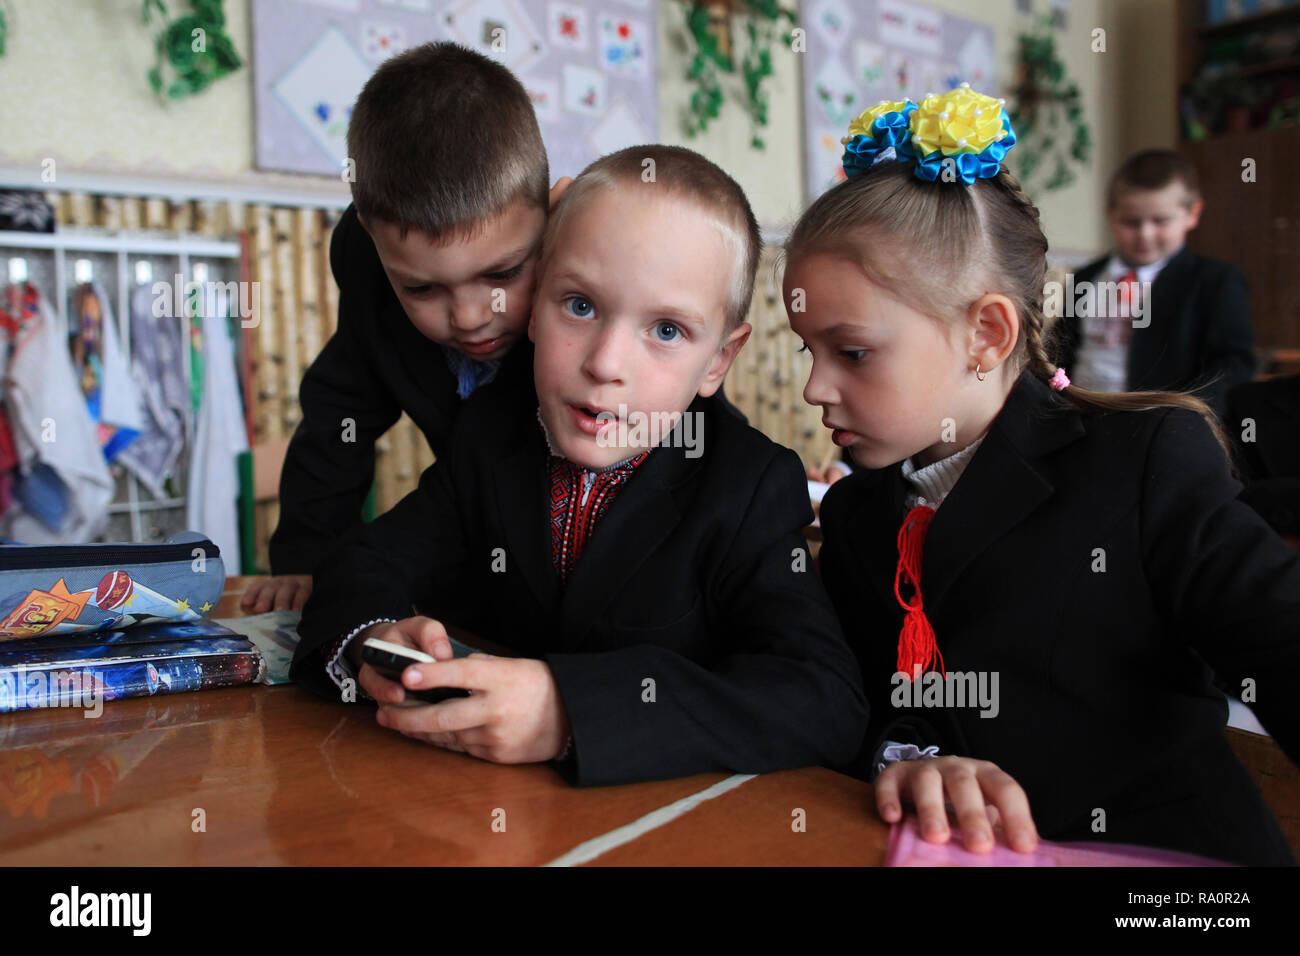 Ukrainian schoolchildren playing with the mobile.The school of Radinka is located near by the Chernobyl Exclusion Zone.The area is contaminated. Stock Photo